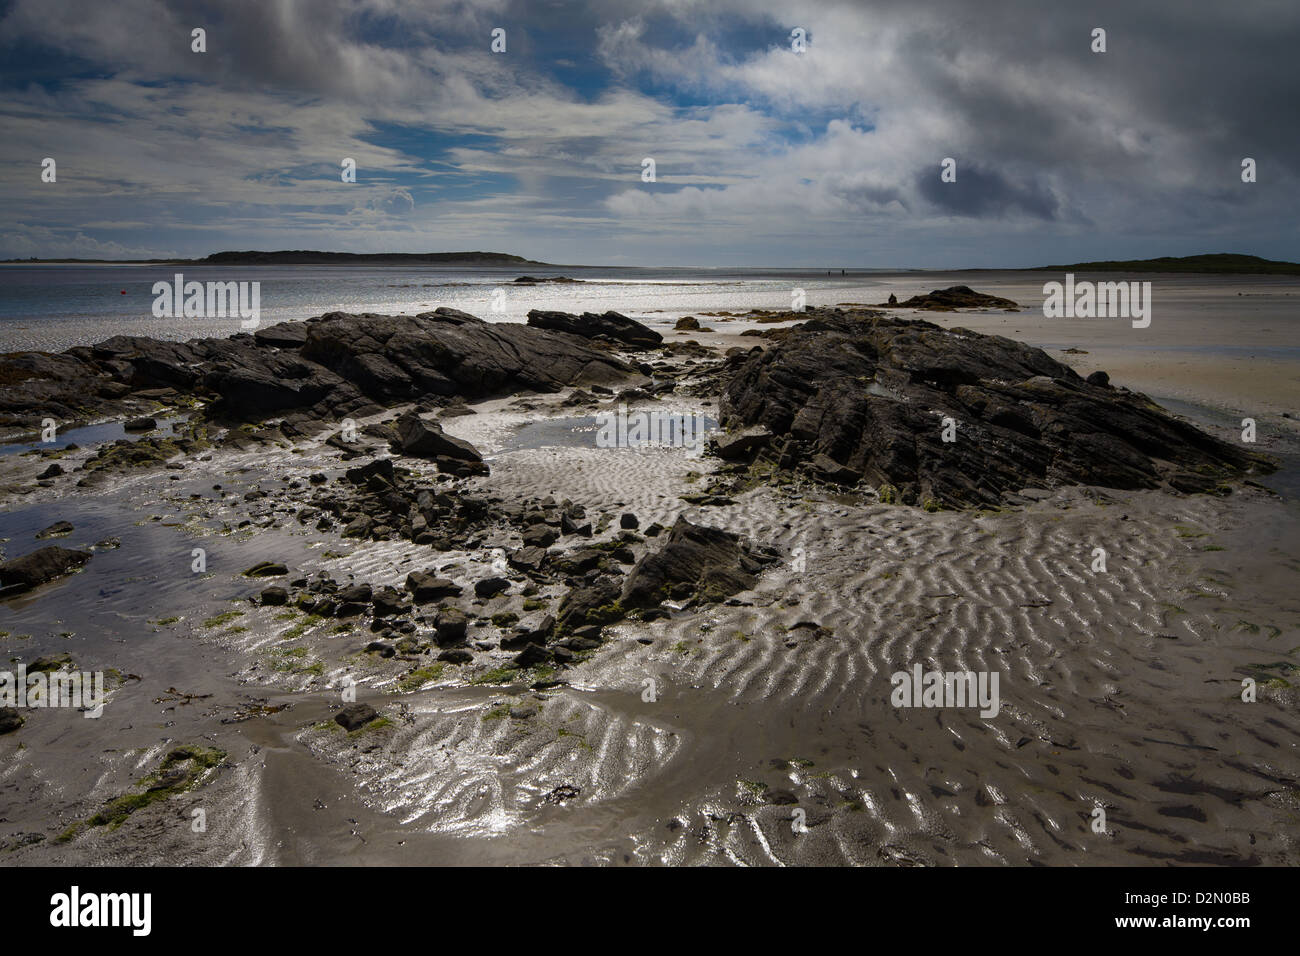 Sandy beach and rocks in North Uist in the Outer Hebrides - Stock Image